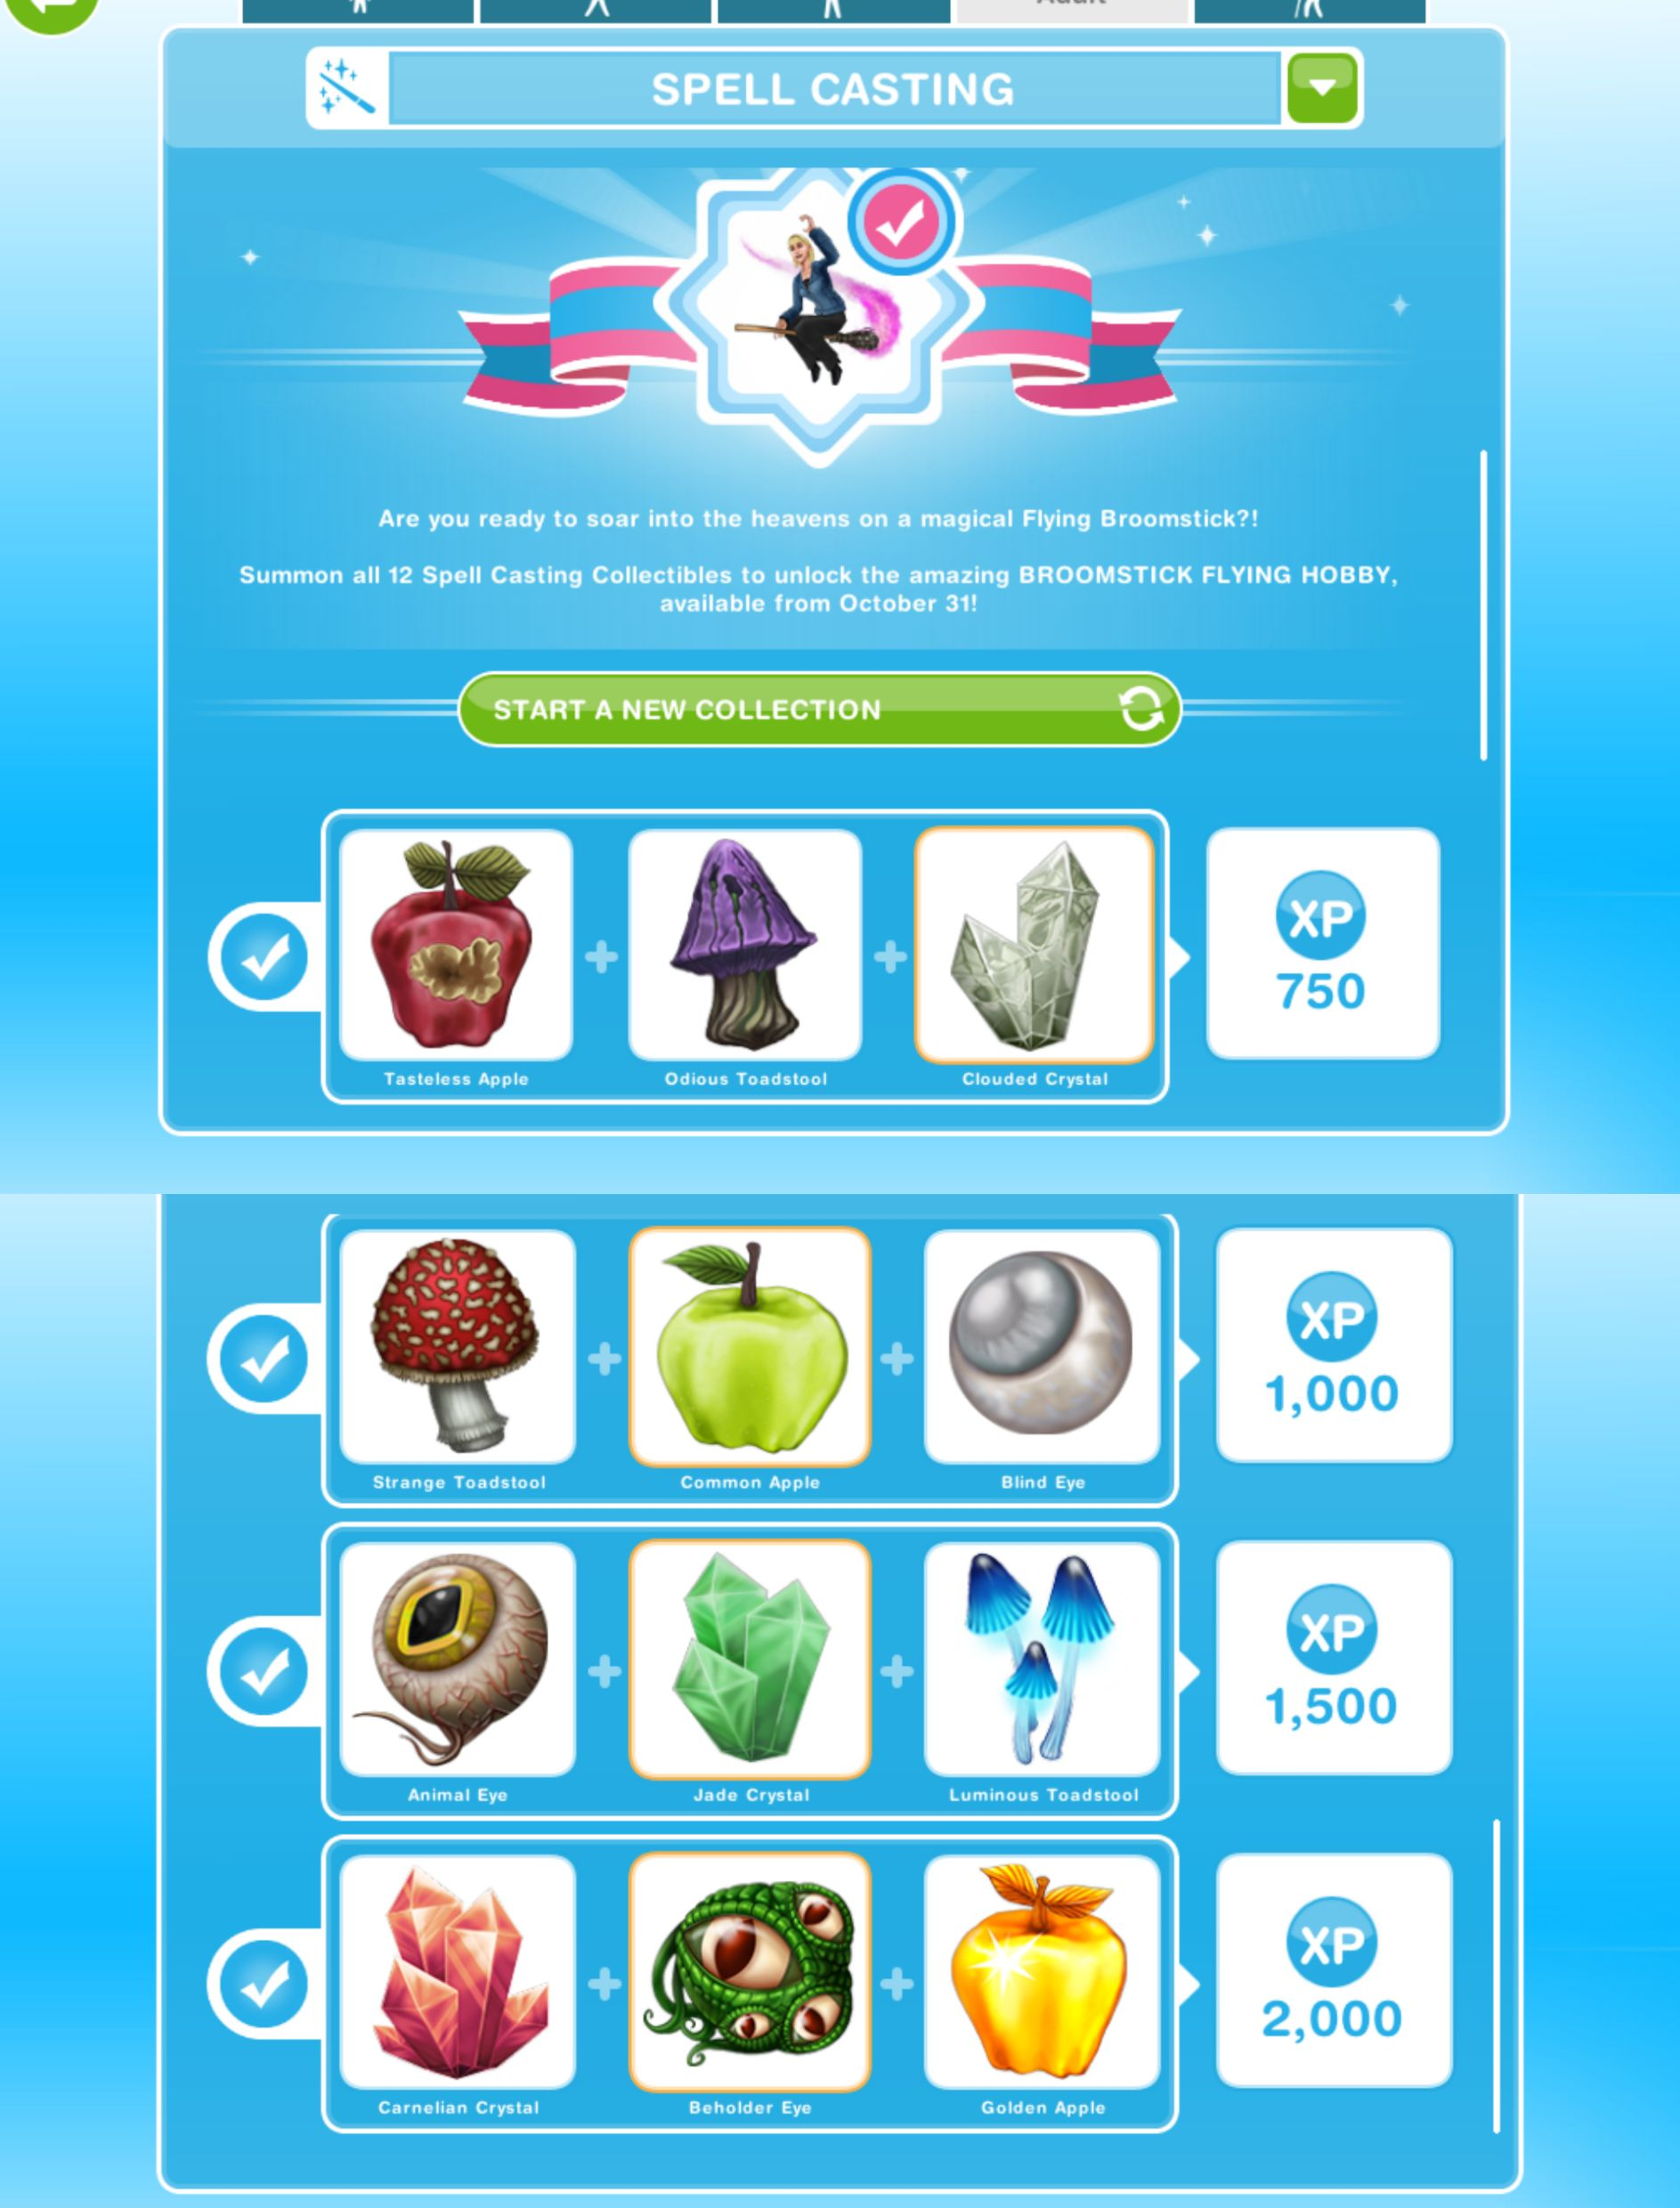 The sims freeplay long hairstyle - You Will Earn Xps When You Complete A Row In The Hobby But To Complete The Collection You Need To Find All 12 Of The Collectibles